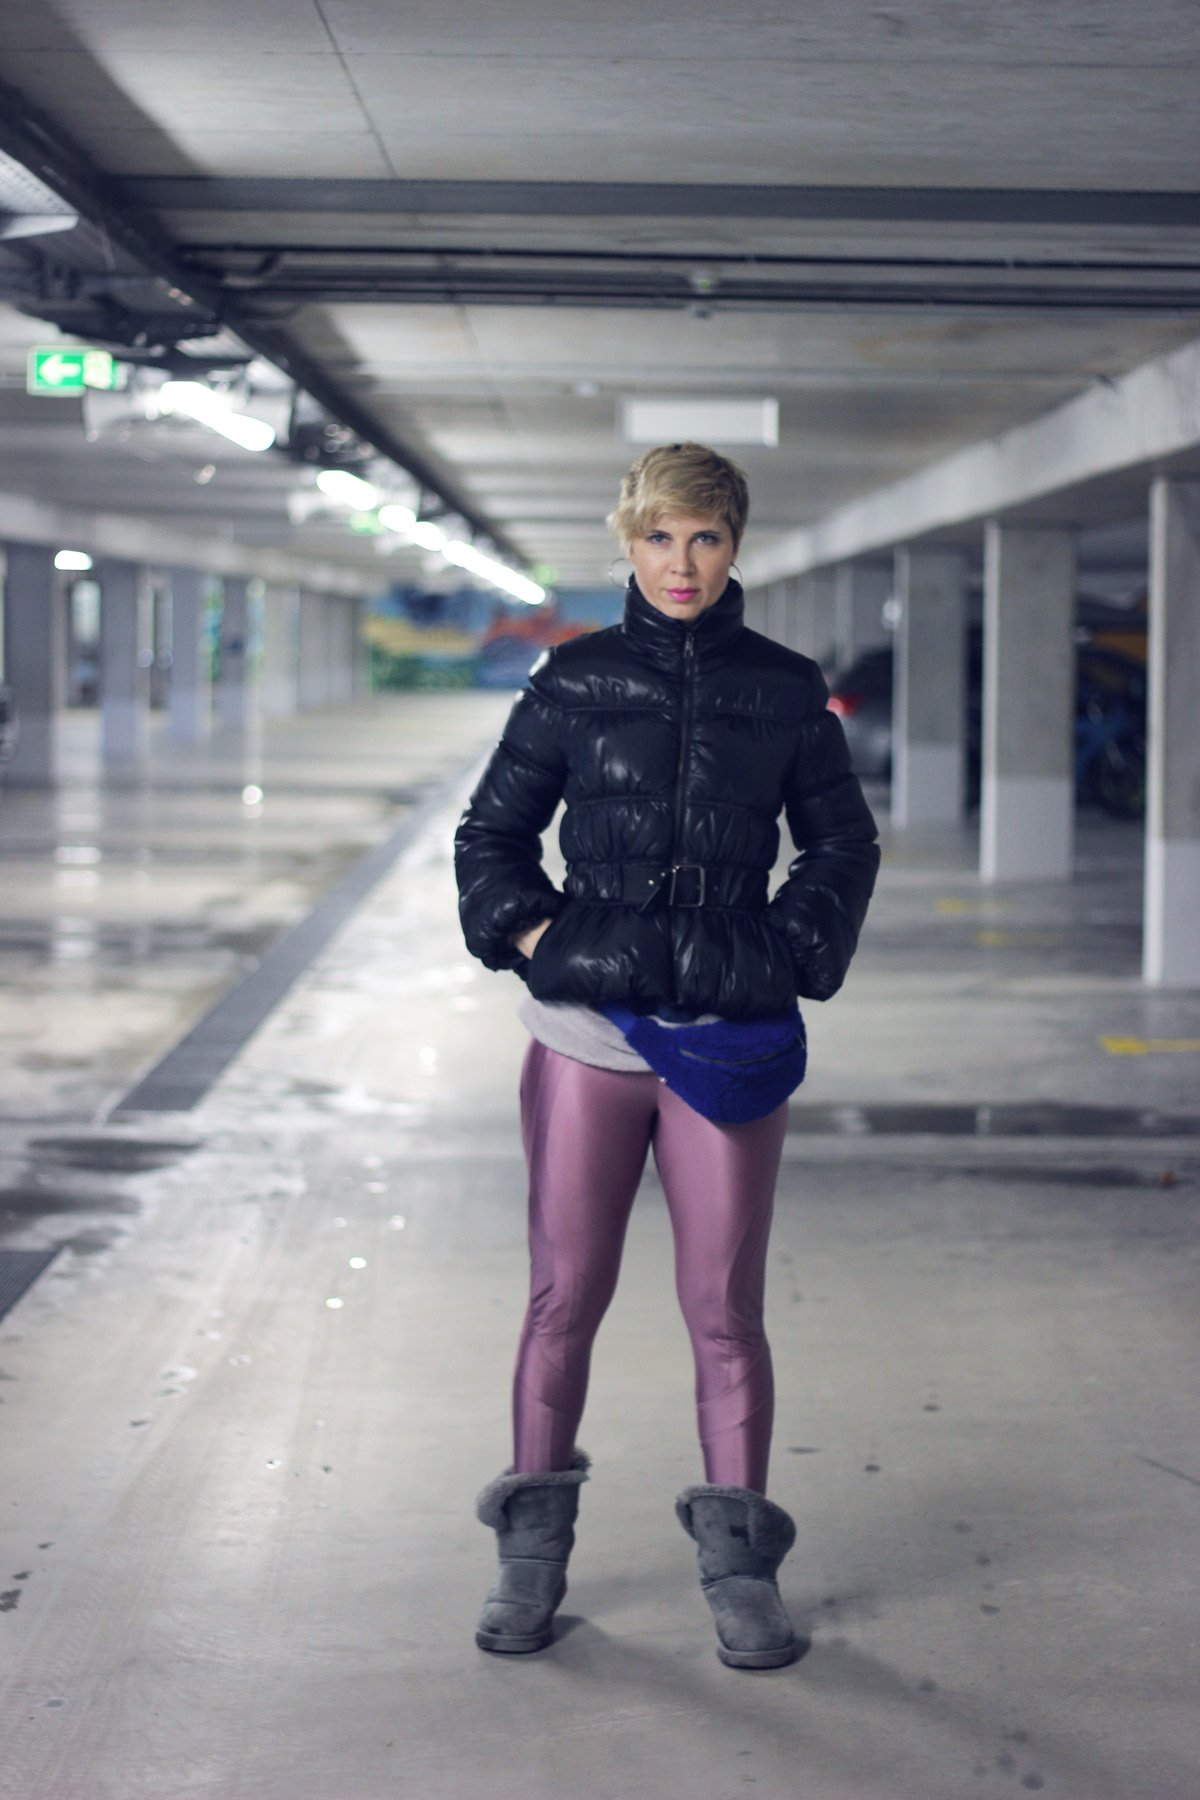 conny doll lifestyle: Achtziger Jahre Mode, Glanzlegging, UGGs, Fledermauspulli, Bognerstyle, Eighties Style, Muenchenblogger